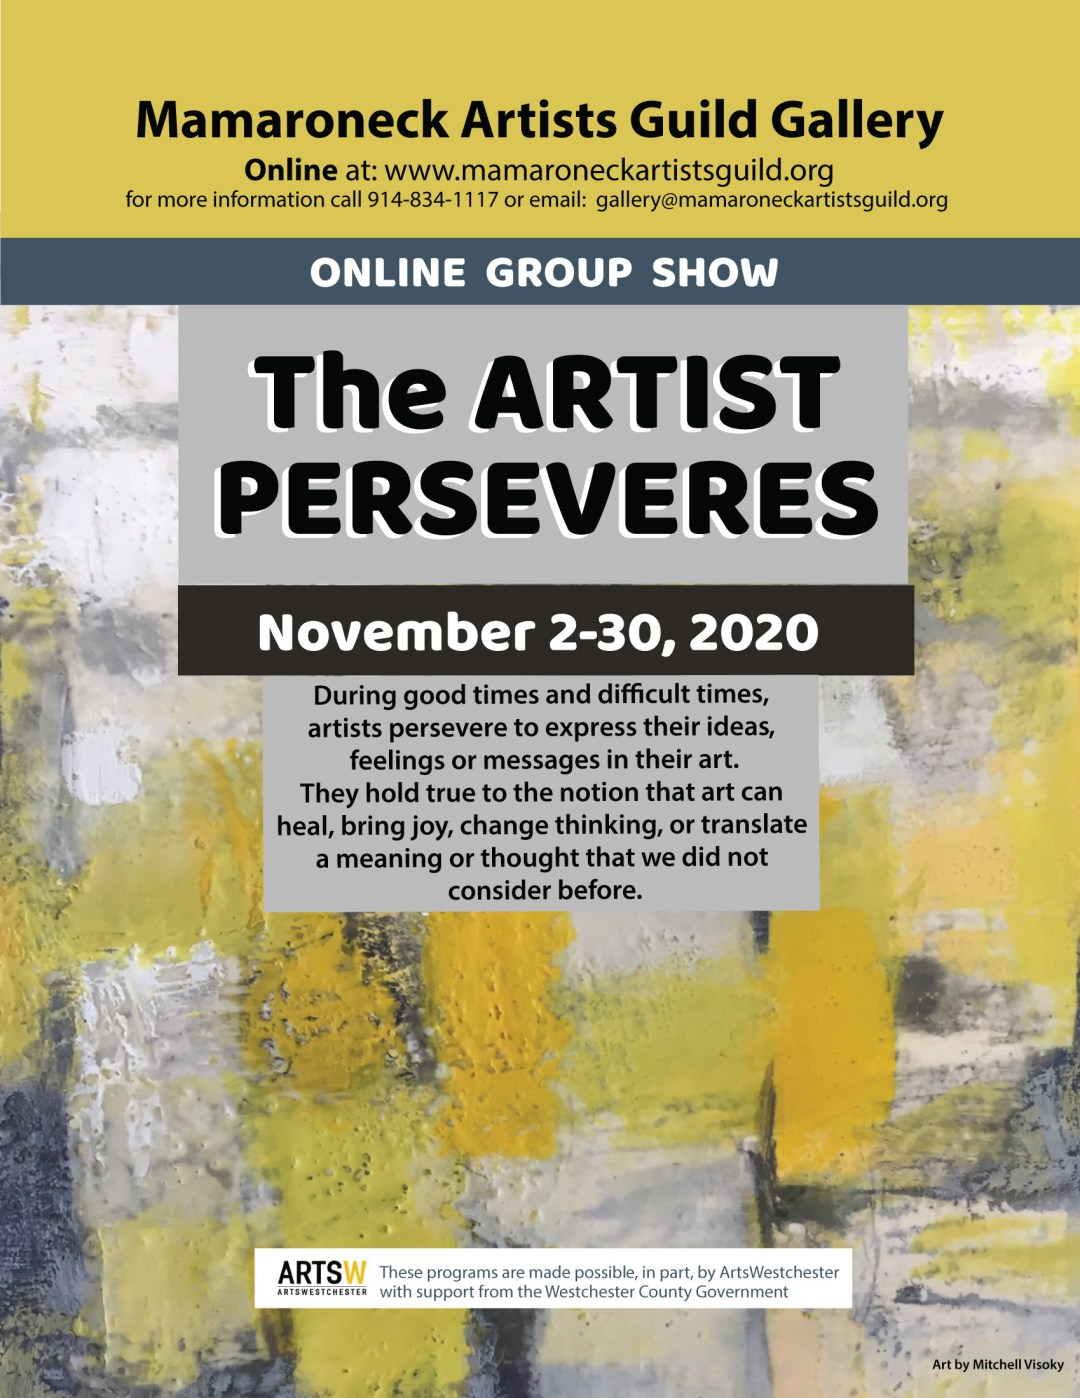 A flyer for online group show The Artist Perseveres